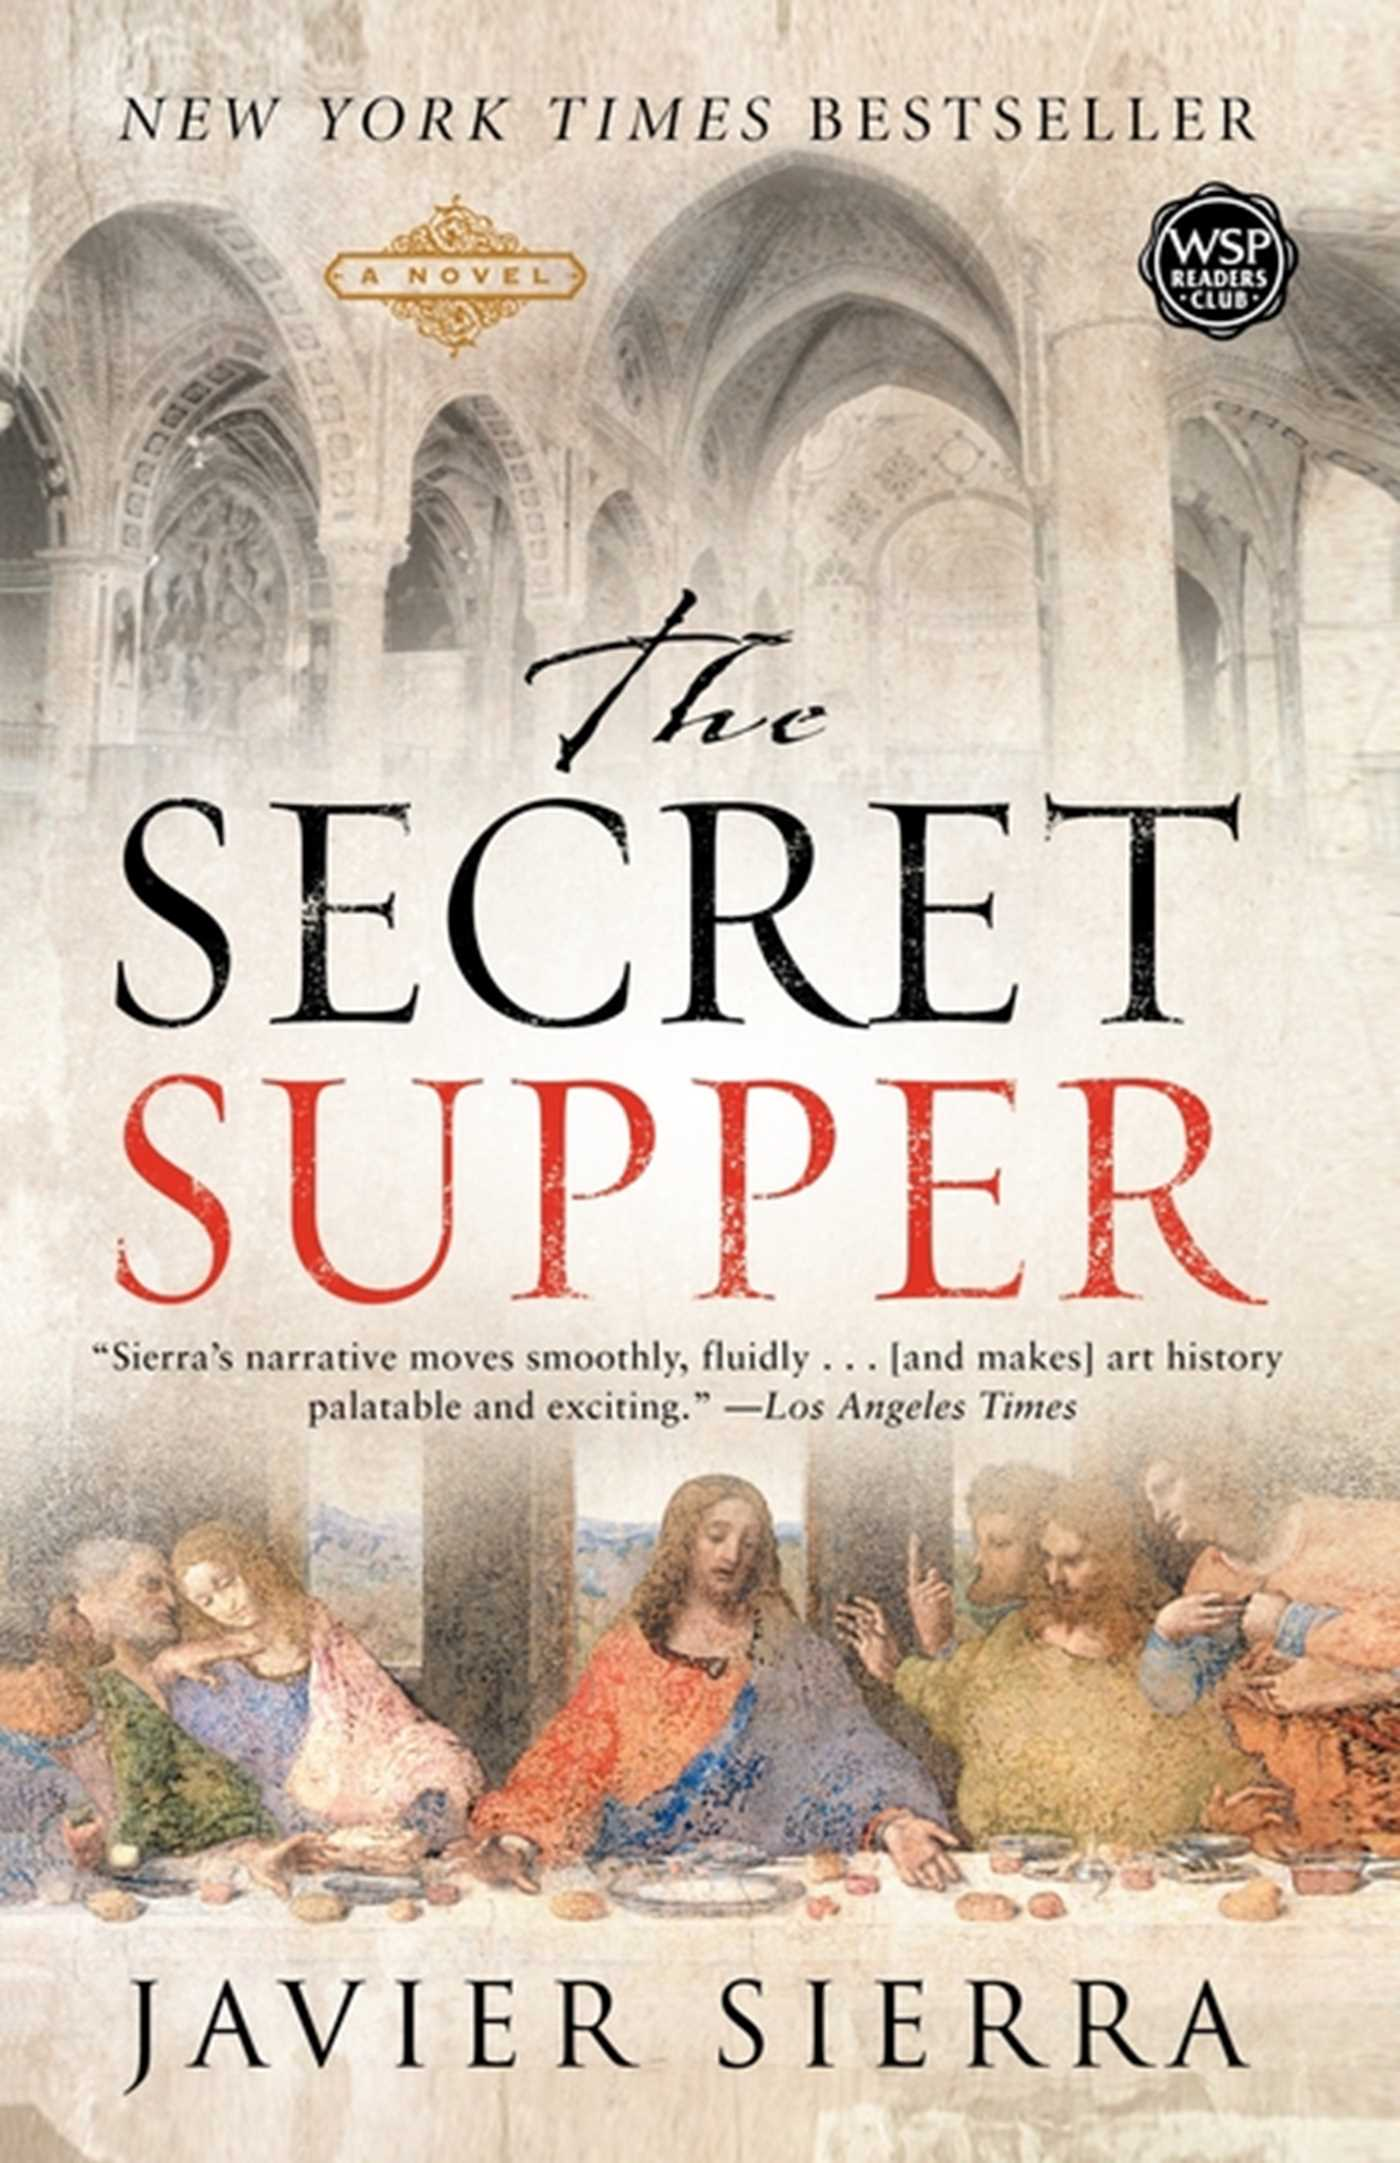 The secret supper 9781416524670 hr